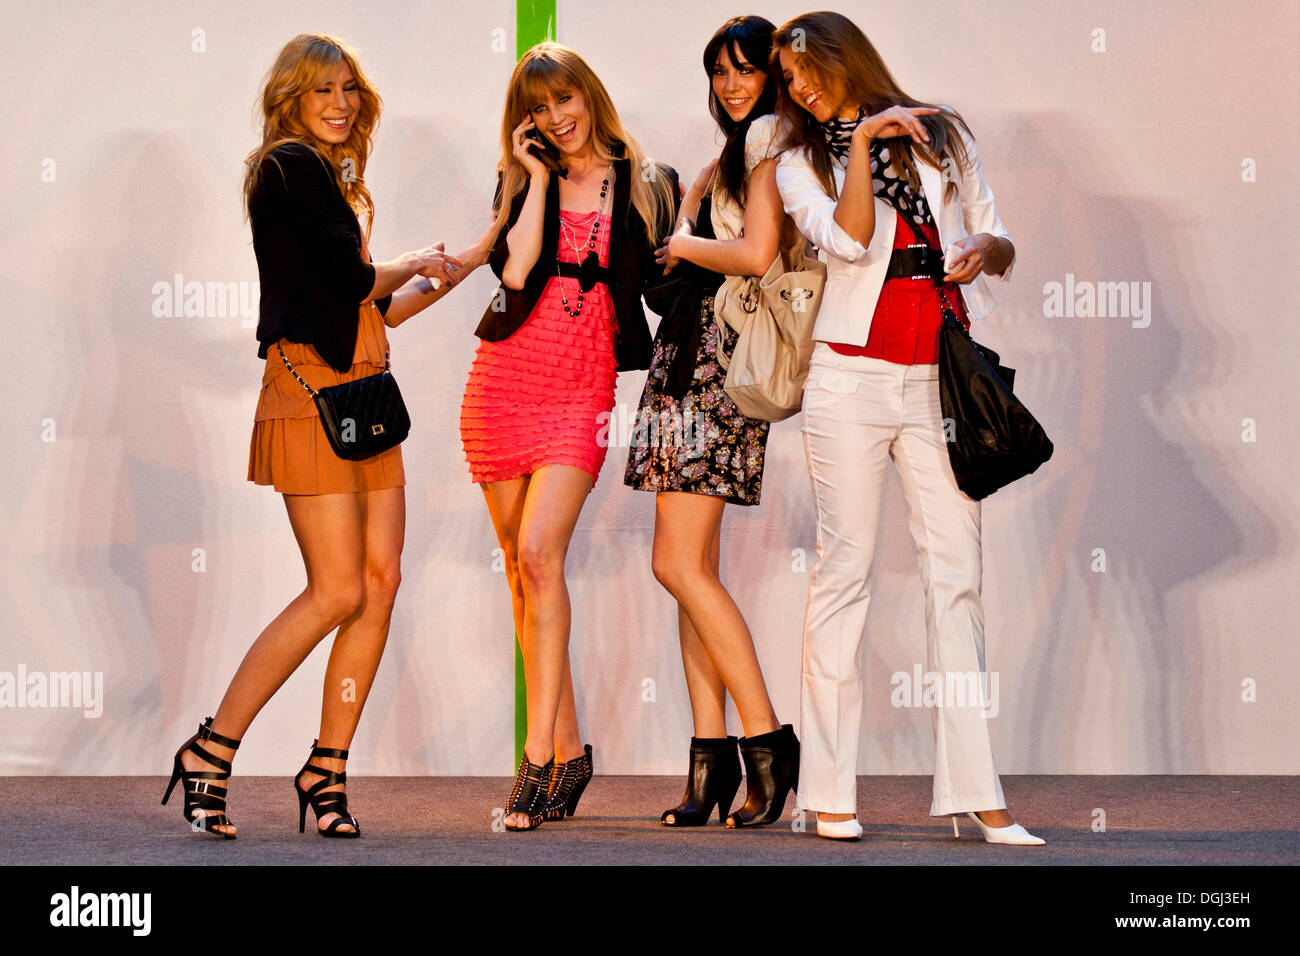 Four female models performing with mobile phones on a stage - Stock Image